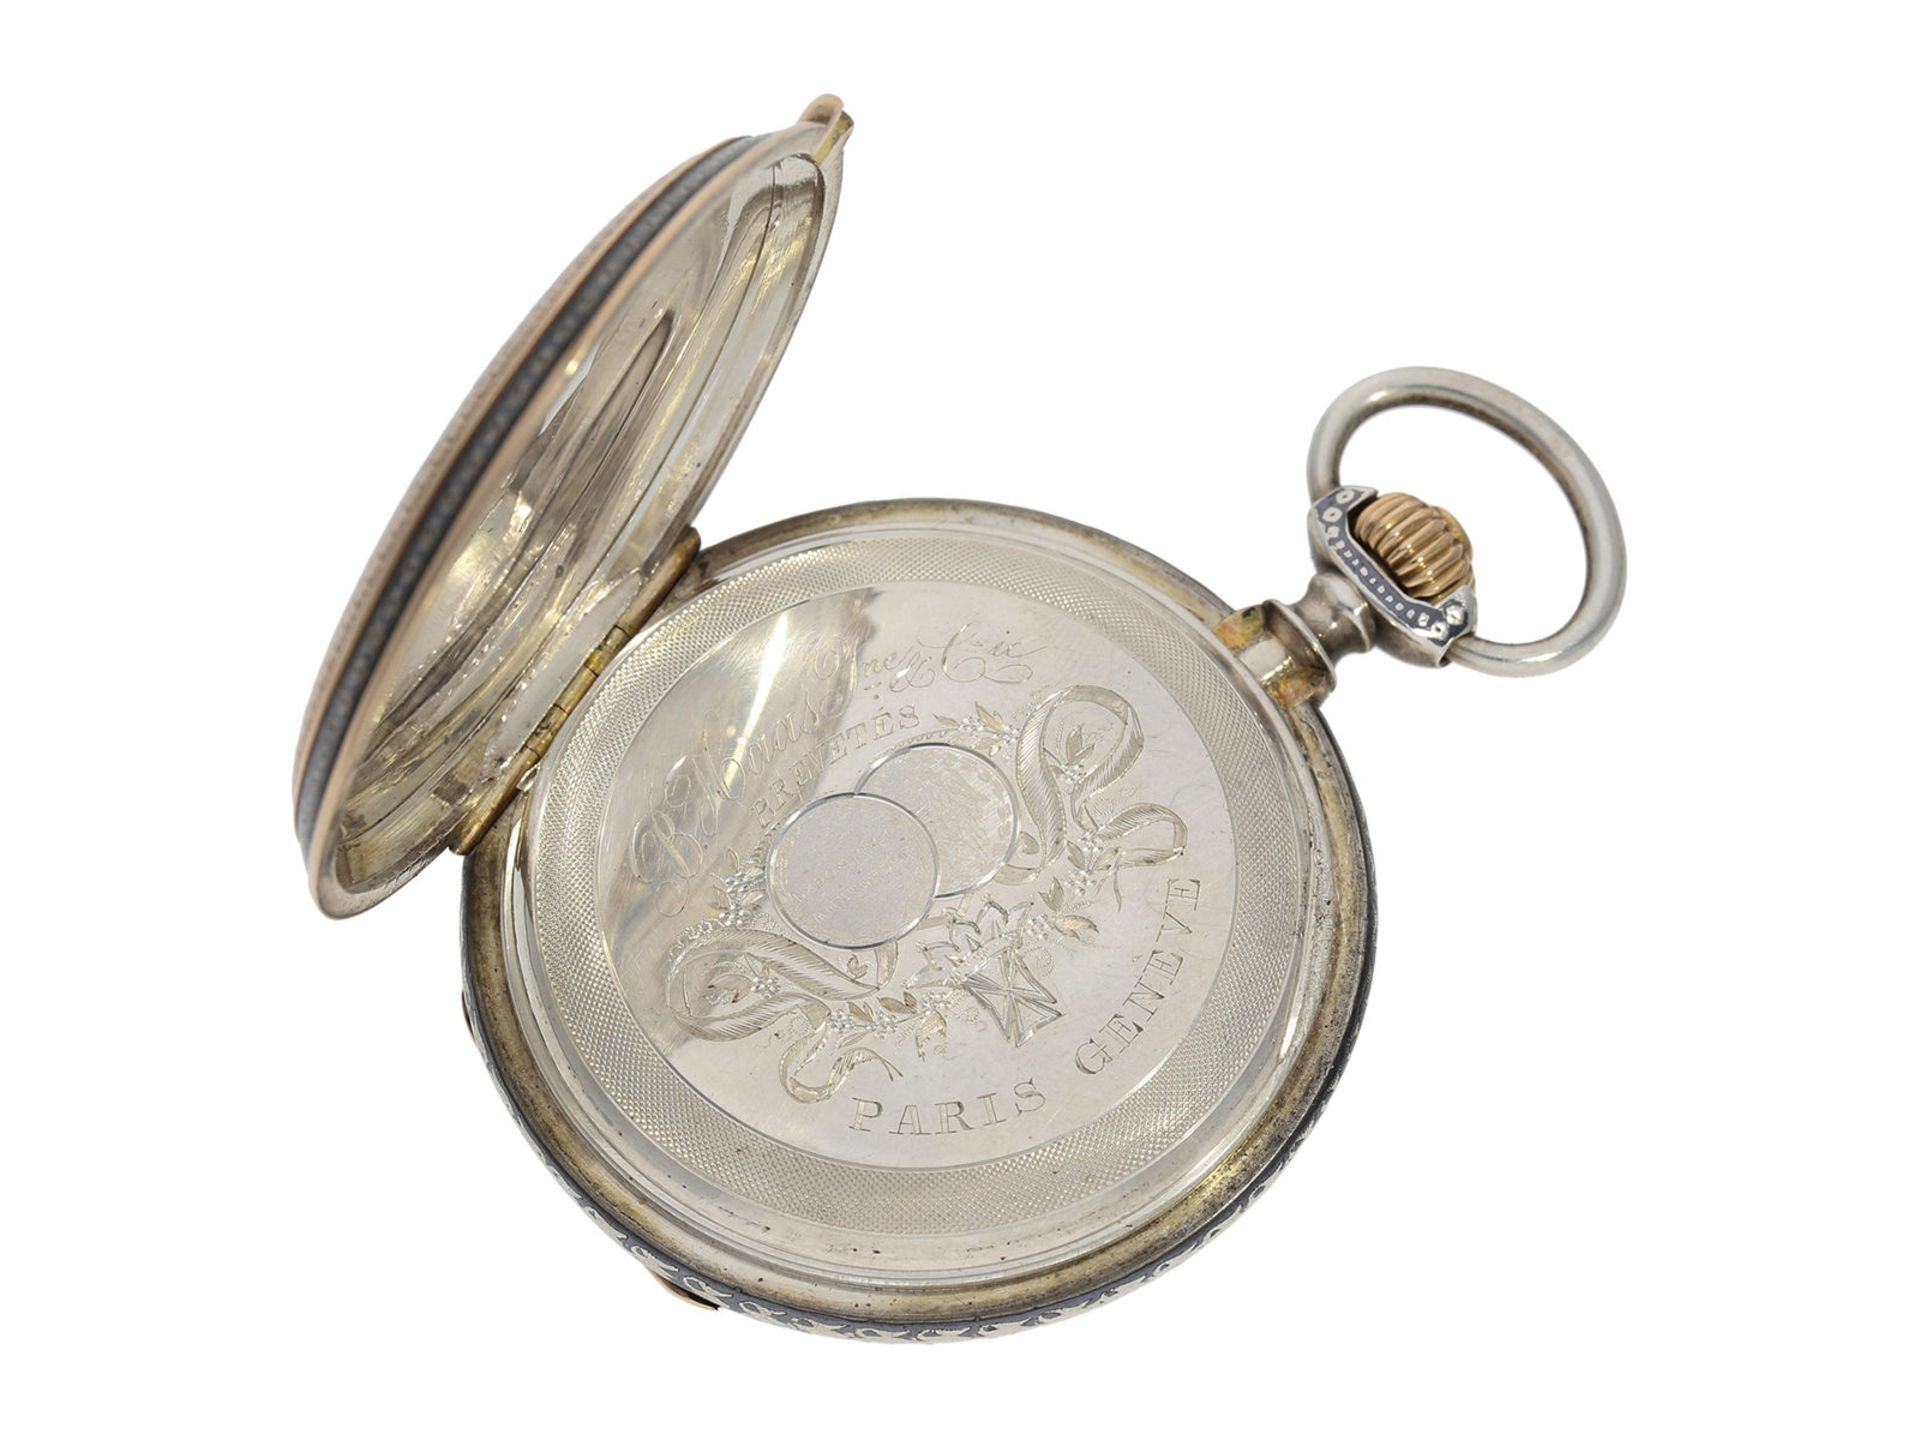 Pocket watch: extremely splendid Tula hunting case watch pink gold/ silver, high quality - Bild 5 aus 7